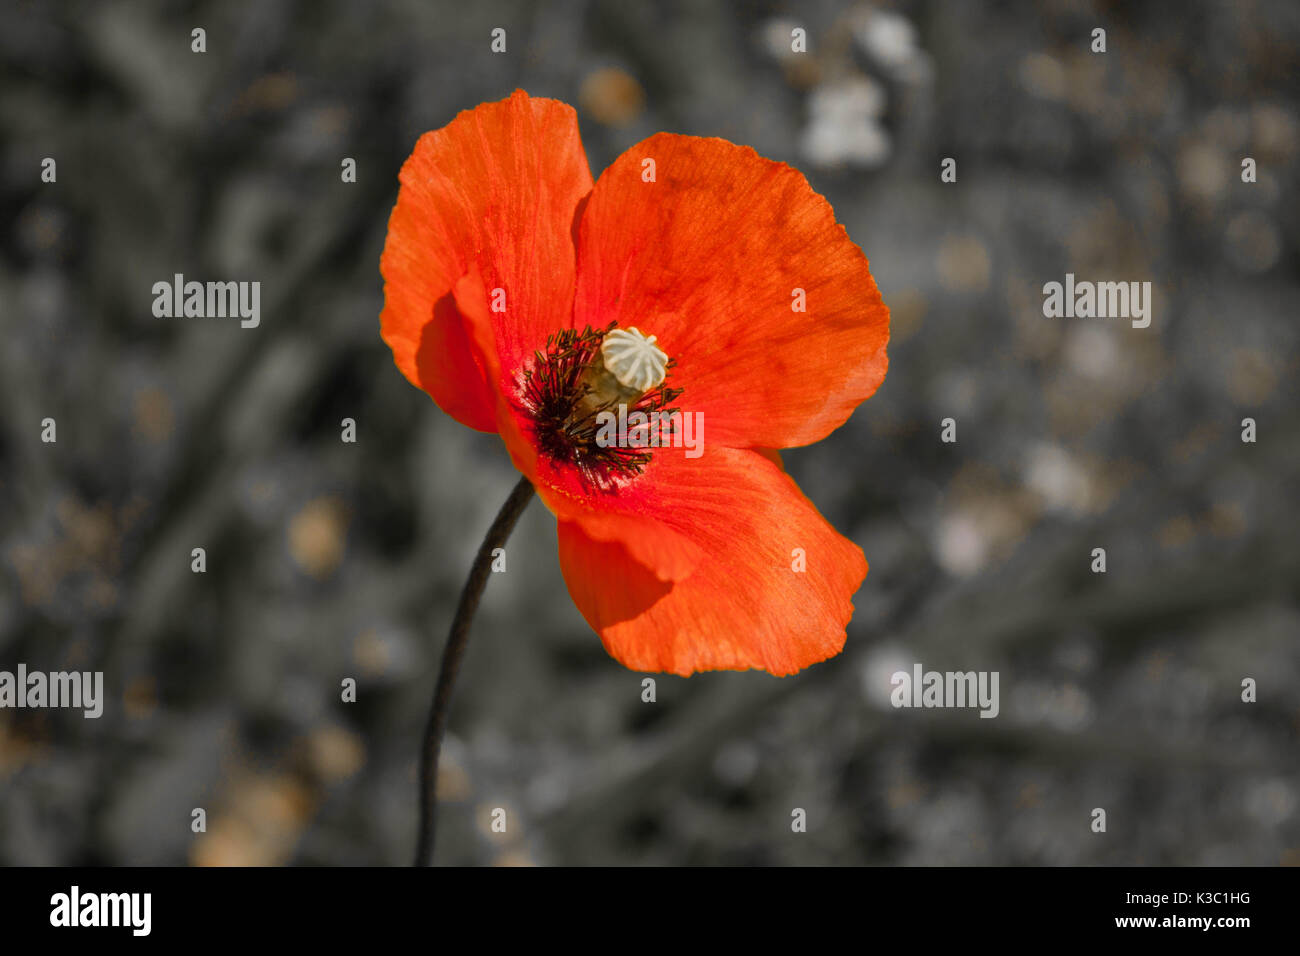 Black and white poppy stock photos black and white poppy stock red poppy flower close up in abstract black and white field background stock image mightylinksfo